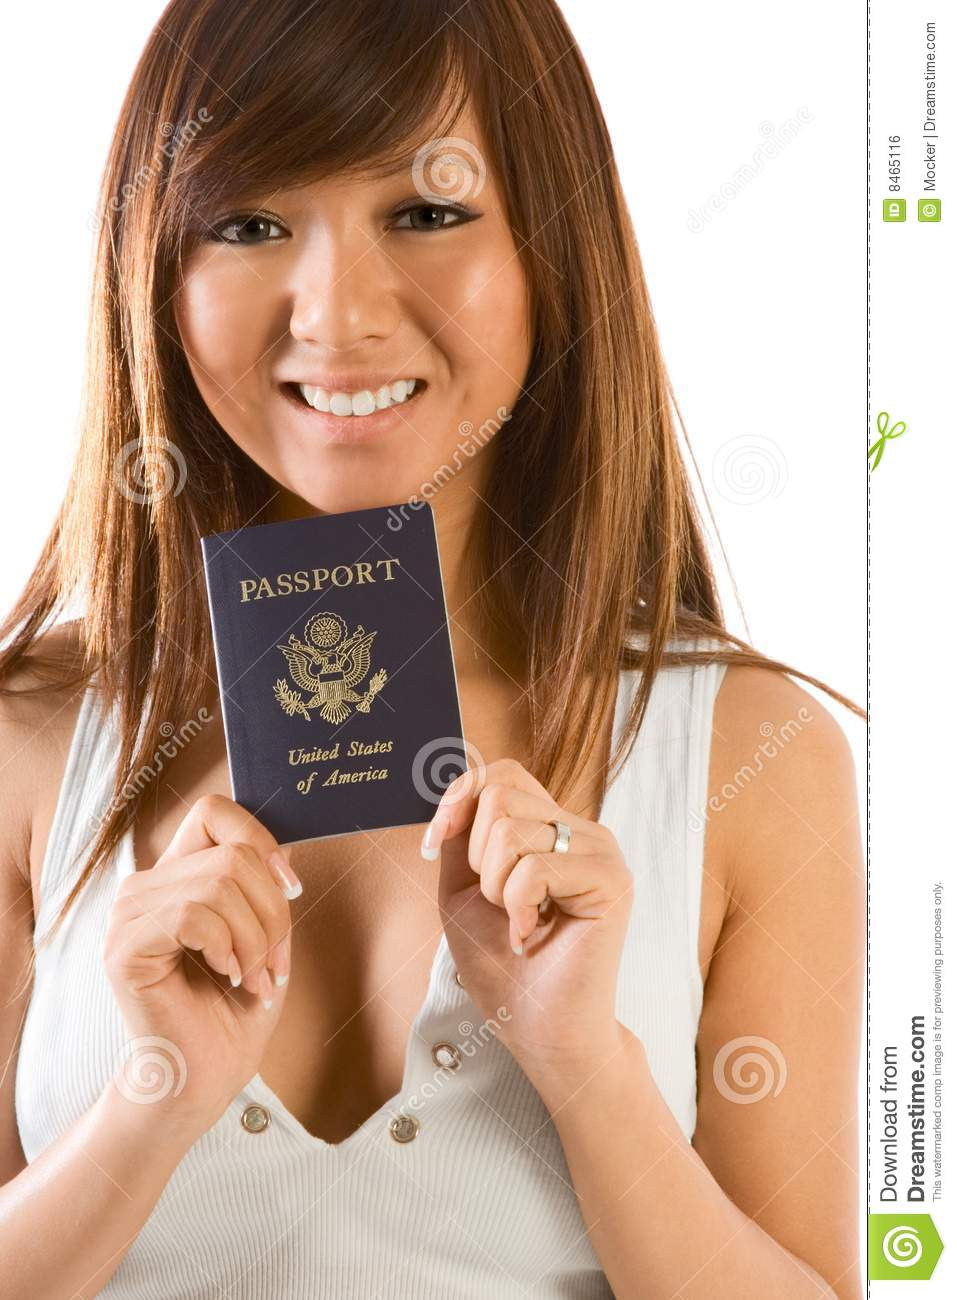 Young Asian Woman With American Passport In Hand Royalty